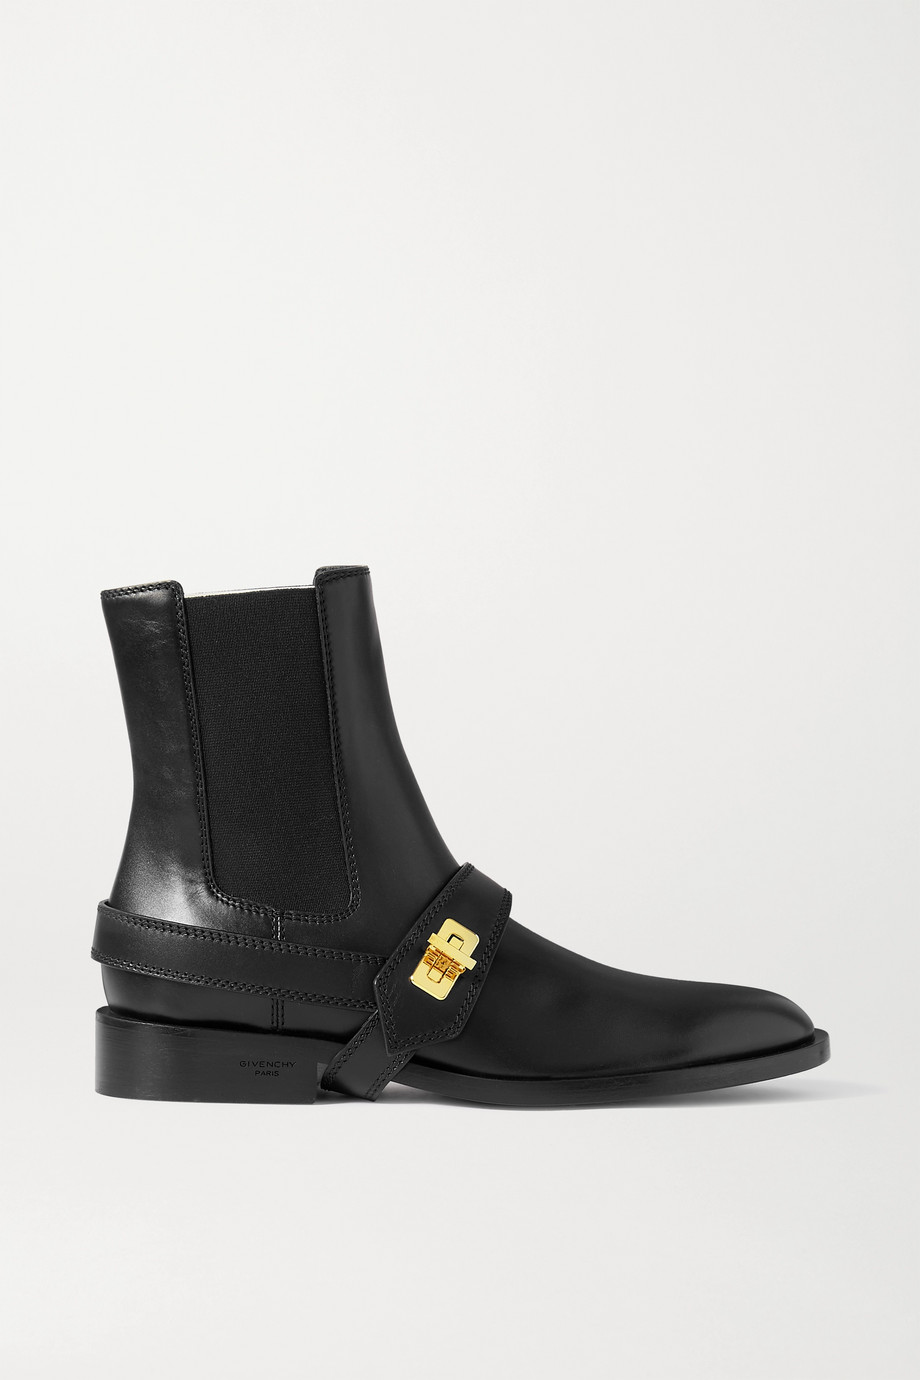 Givenchy Eden buckle-detailed leather Chelsea boots